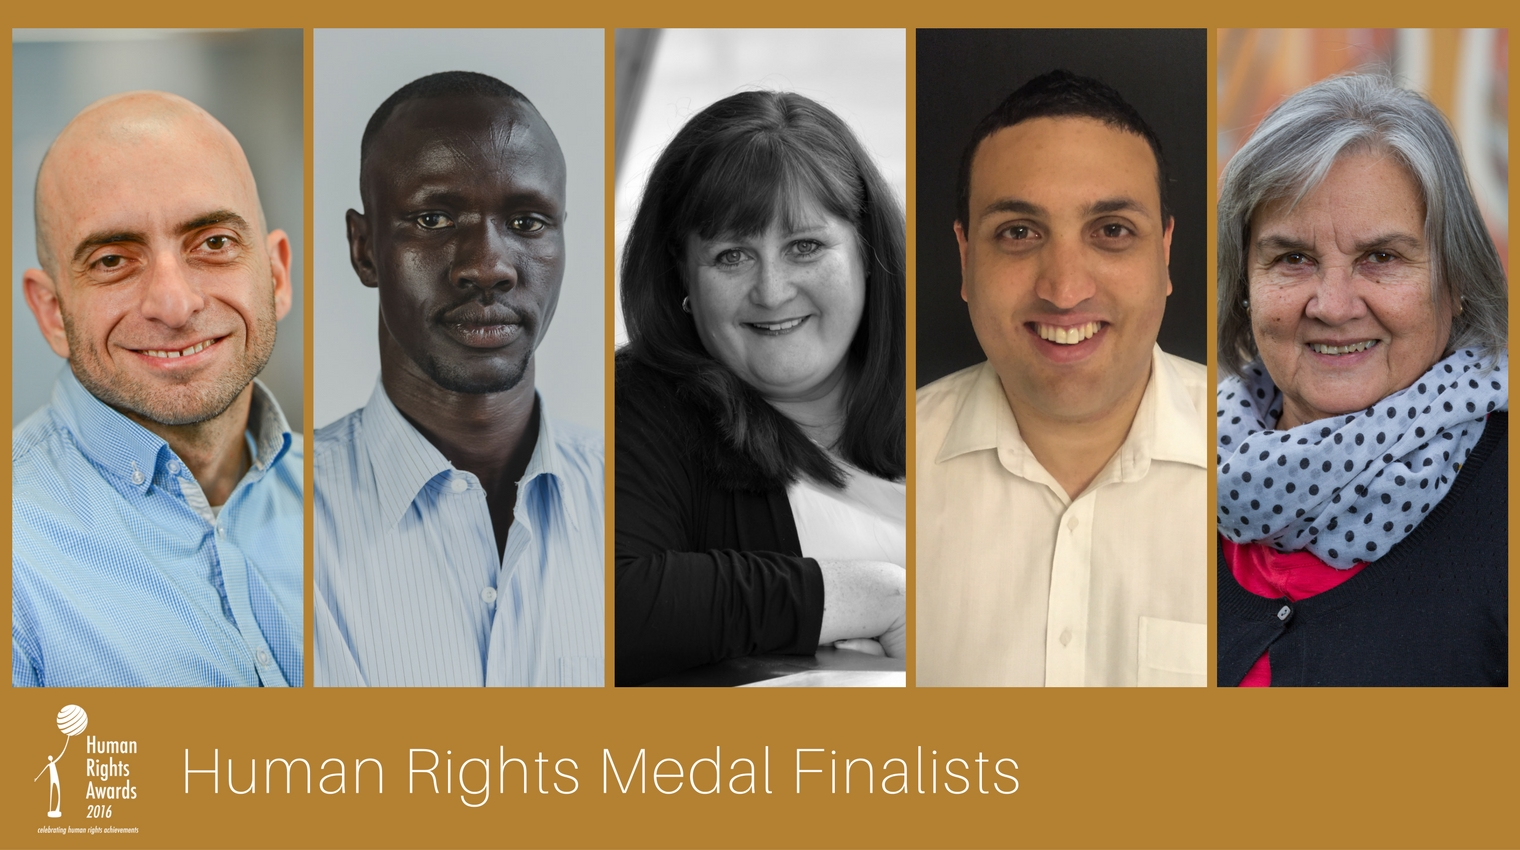 Composite of Human Rights Medal finalists 2016